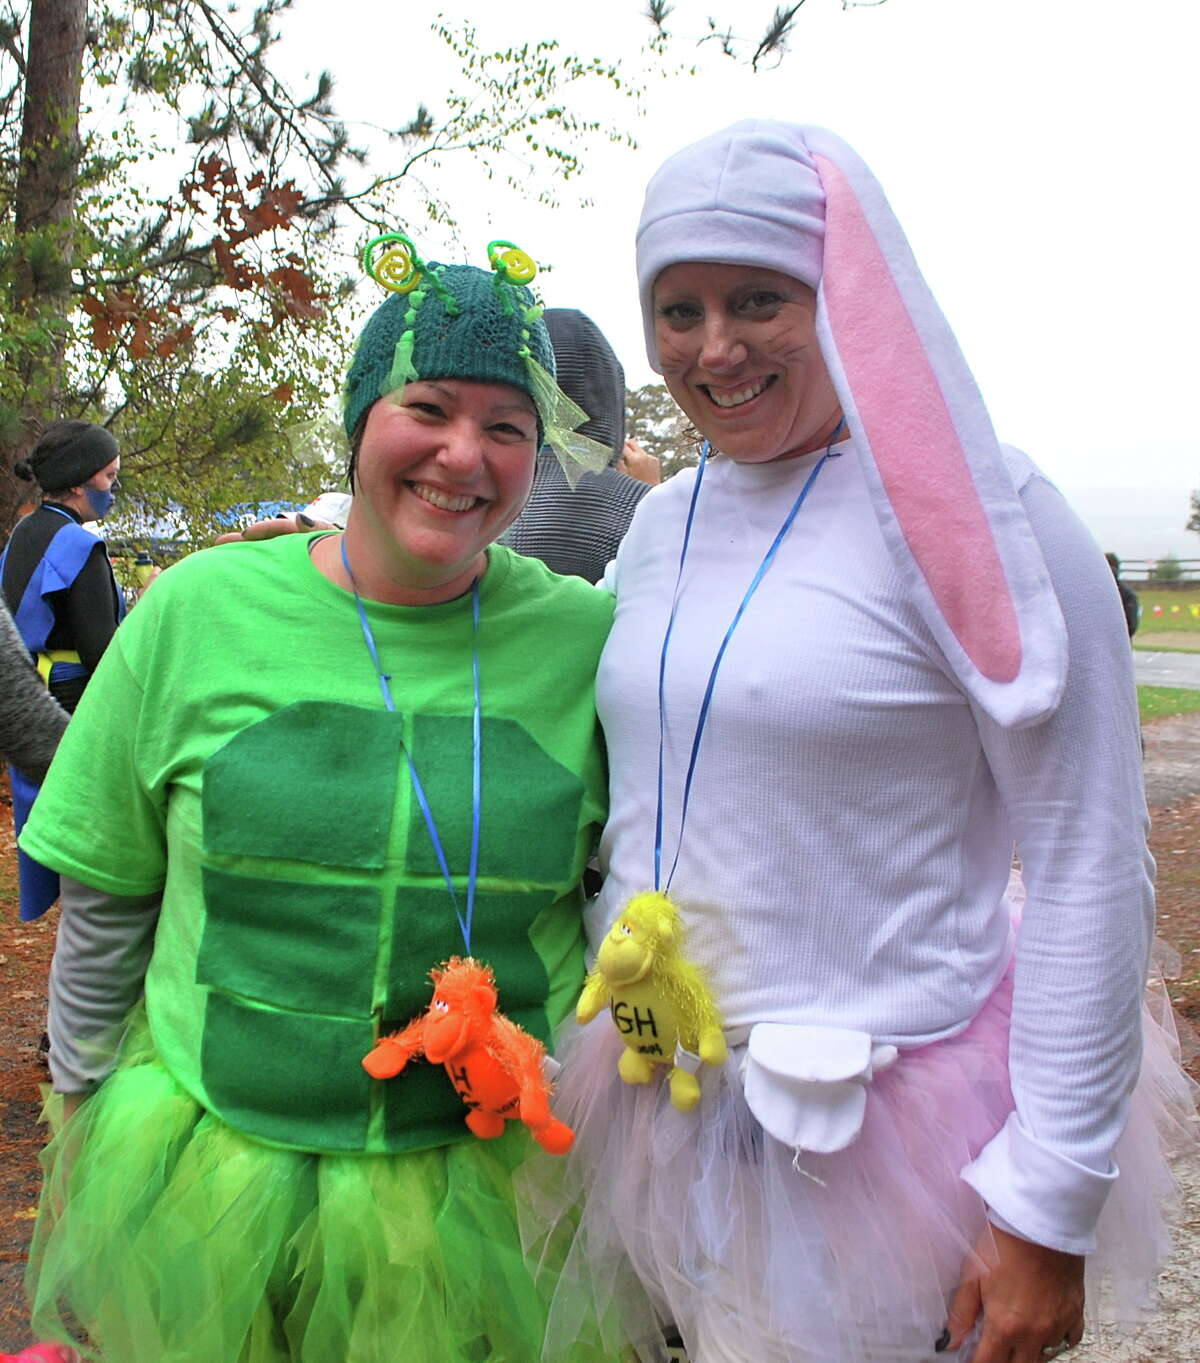 Were you Seen at the 10th Annual Hairy Gorilla Half-Marathon and Squirrelly Six Mile Run at Thacher State Park in Voorheesville on Sunday, Oct. 26, 2014?